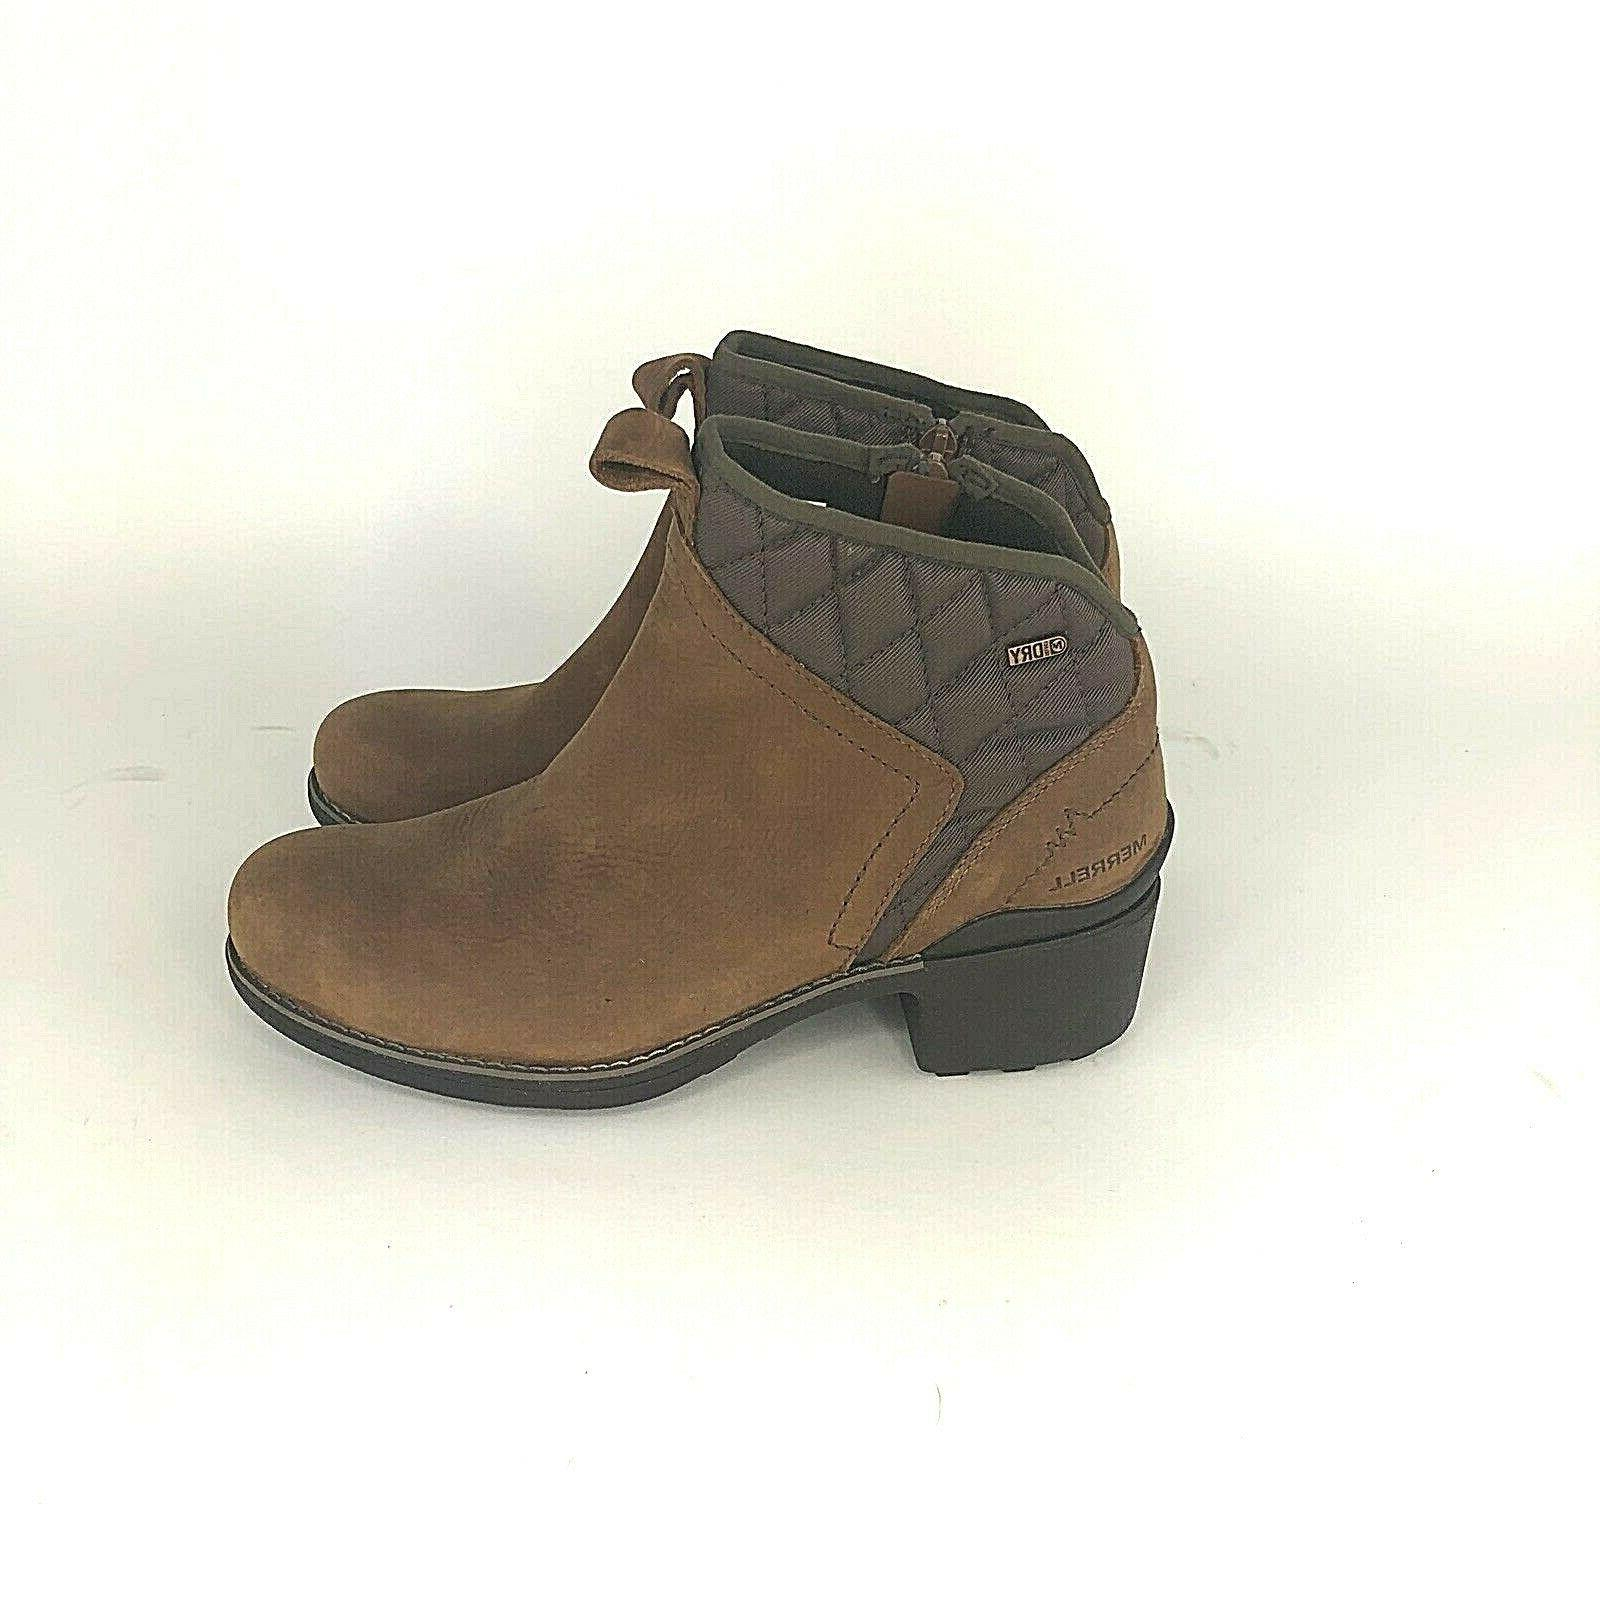 Merrell Size Chateau Mid Snow Brown